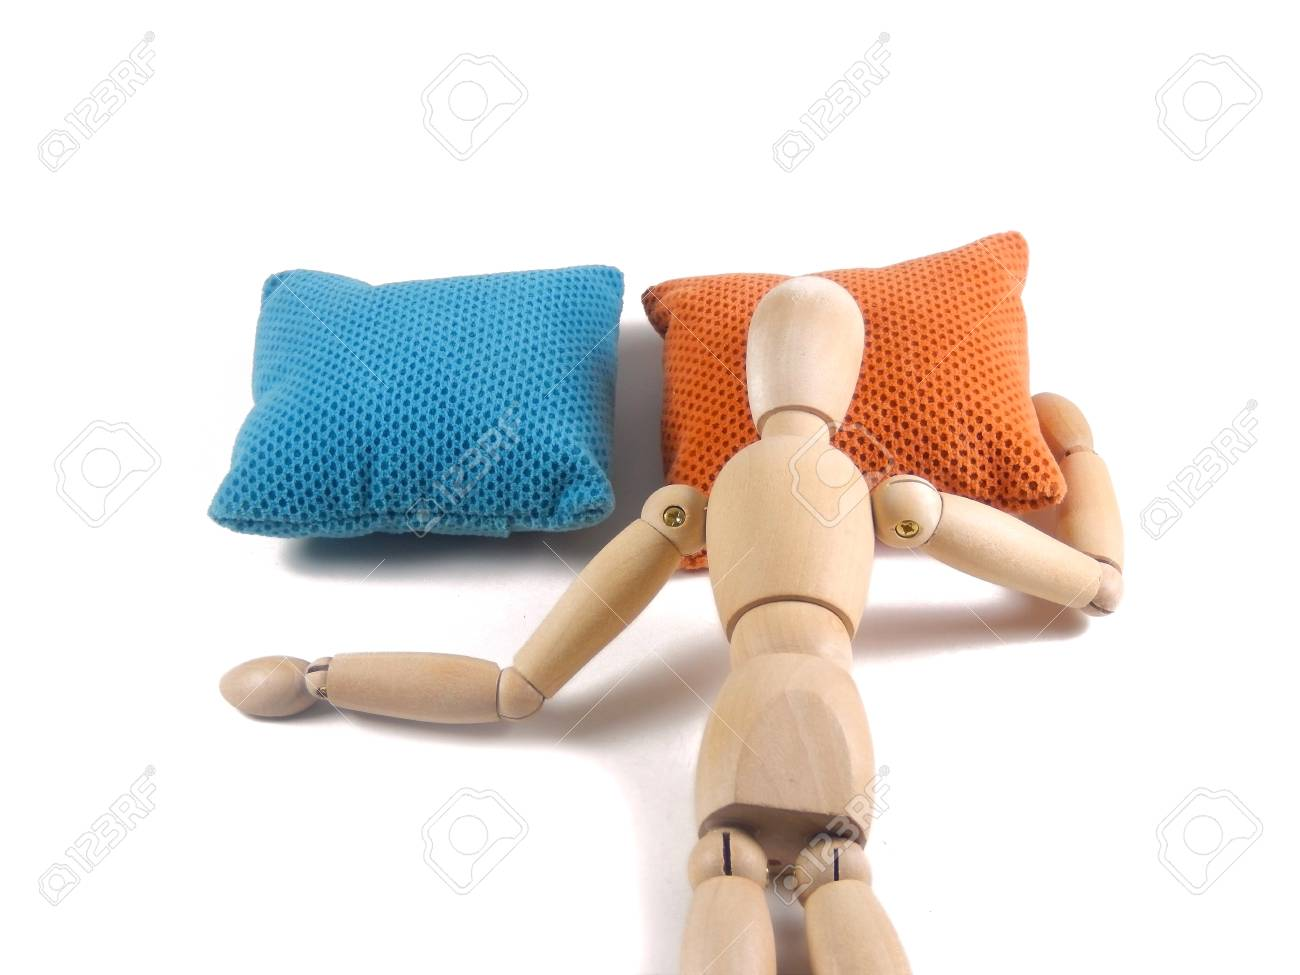 sleeping face down on bed pillow wooden doll or mannequin lying